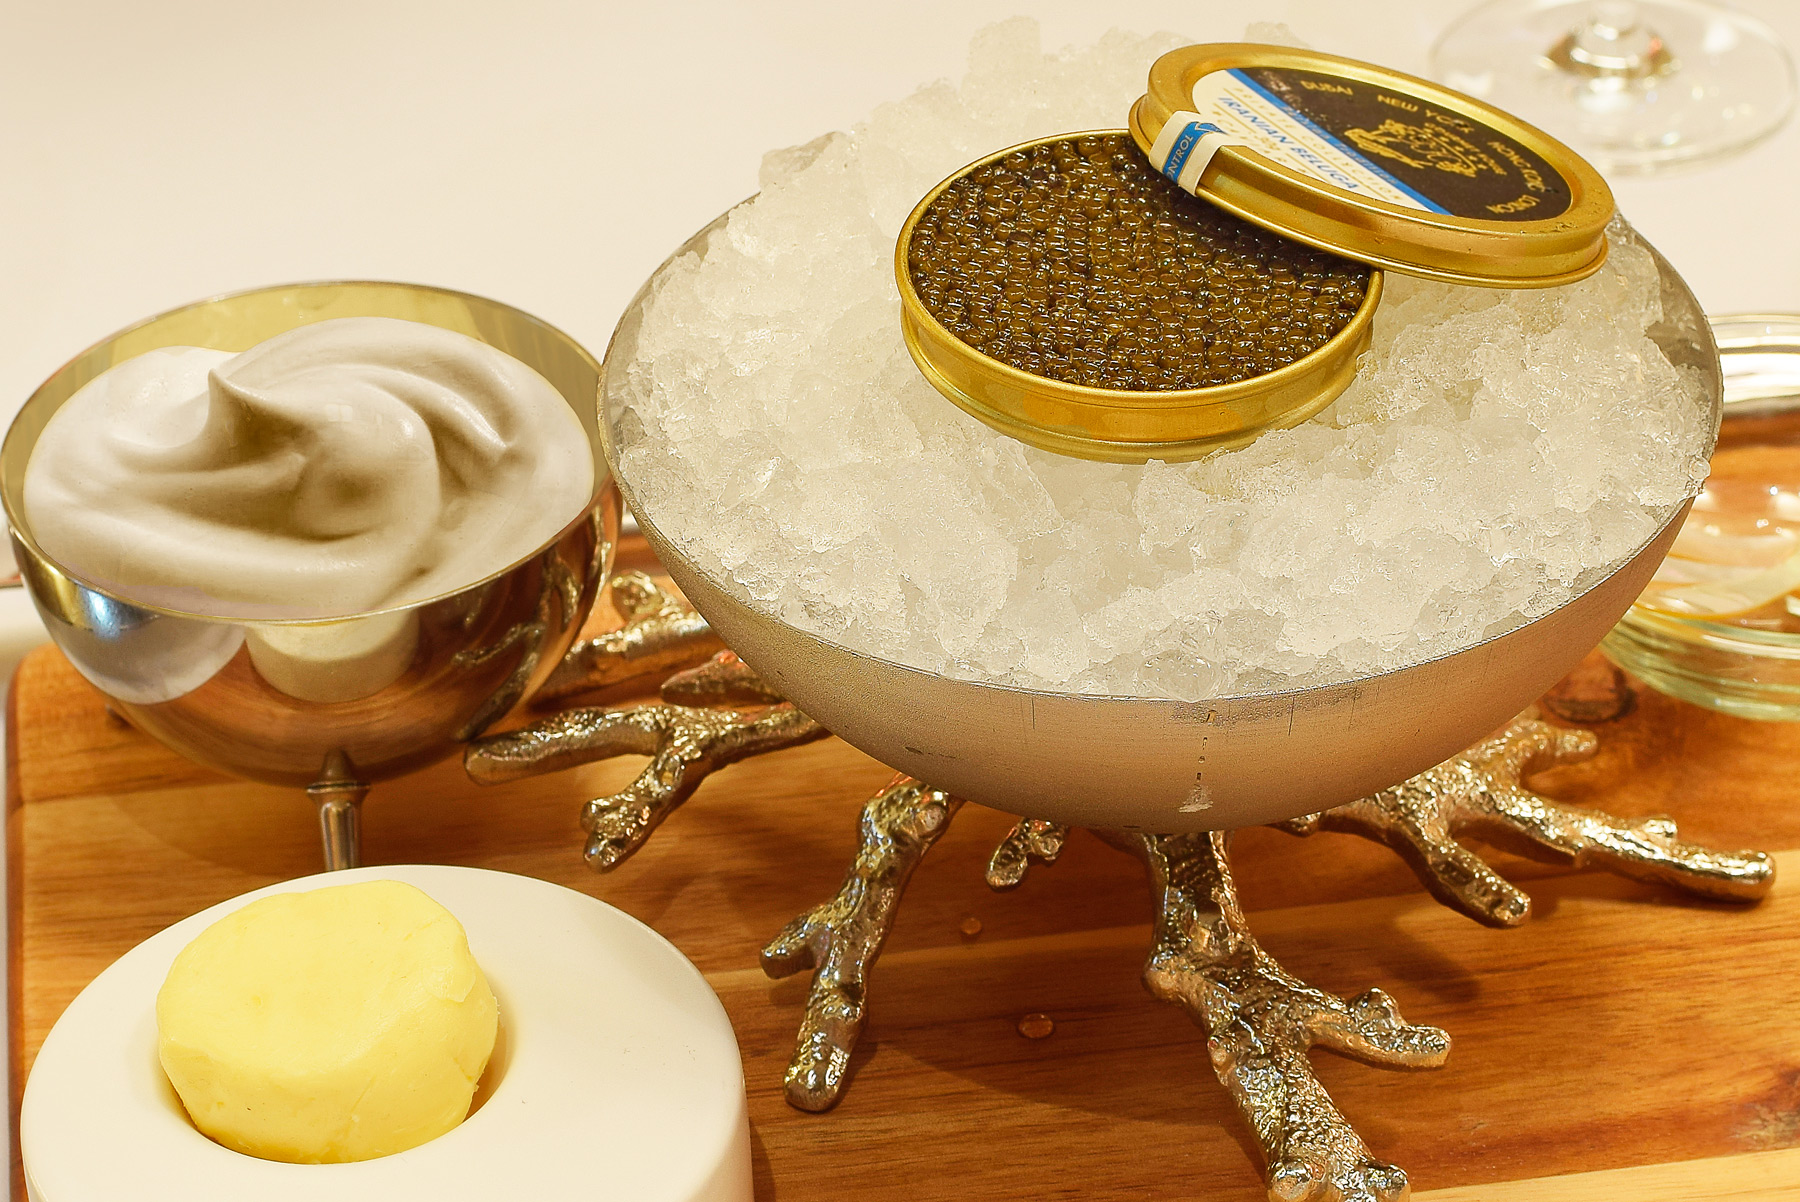 Sydney's Prime Restaurant Launches A Unique Caviar Dining Experience